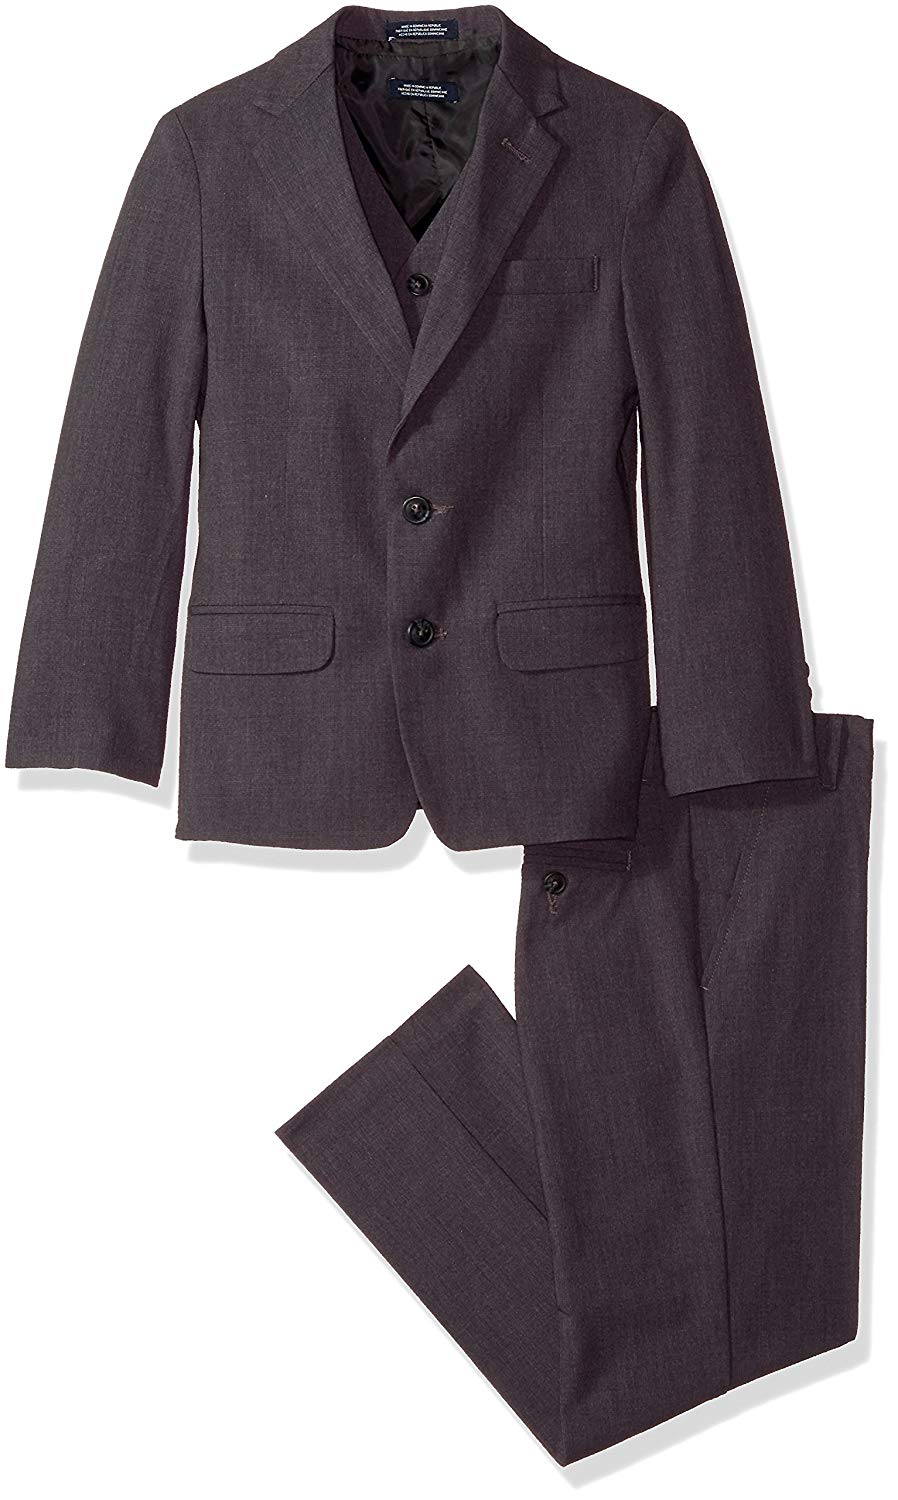 1ac2477e27c54 Get Quotations · Nautica Three Piece Suit with Jacket, Pant, and Vest